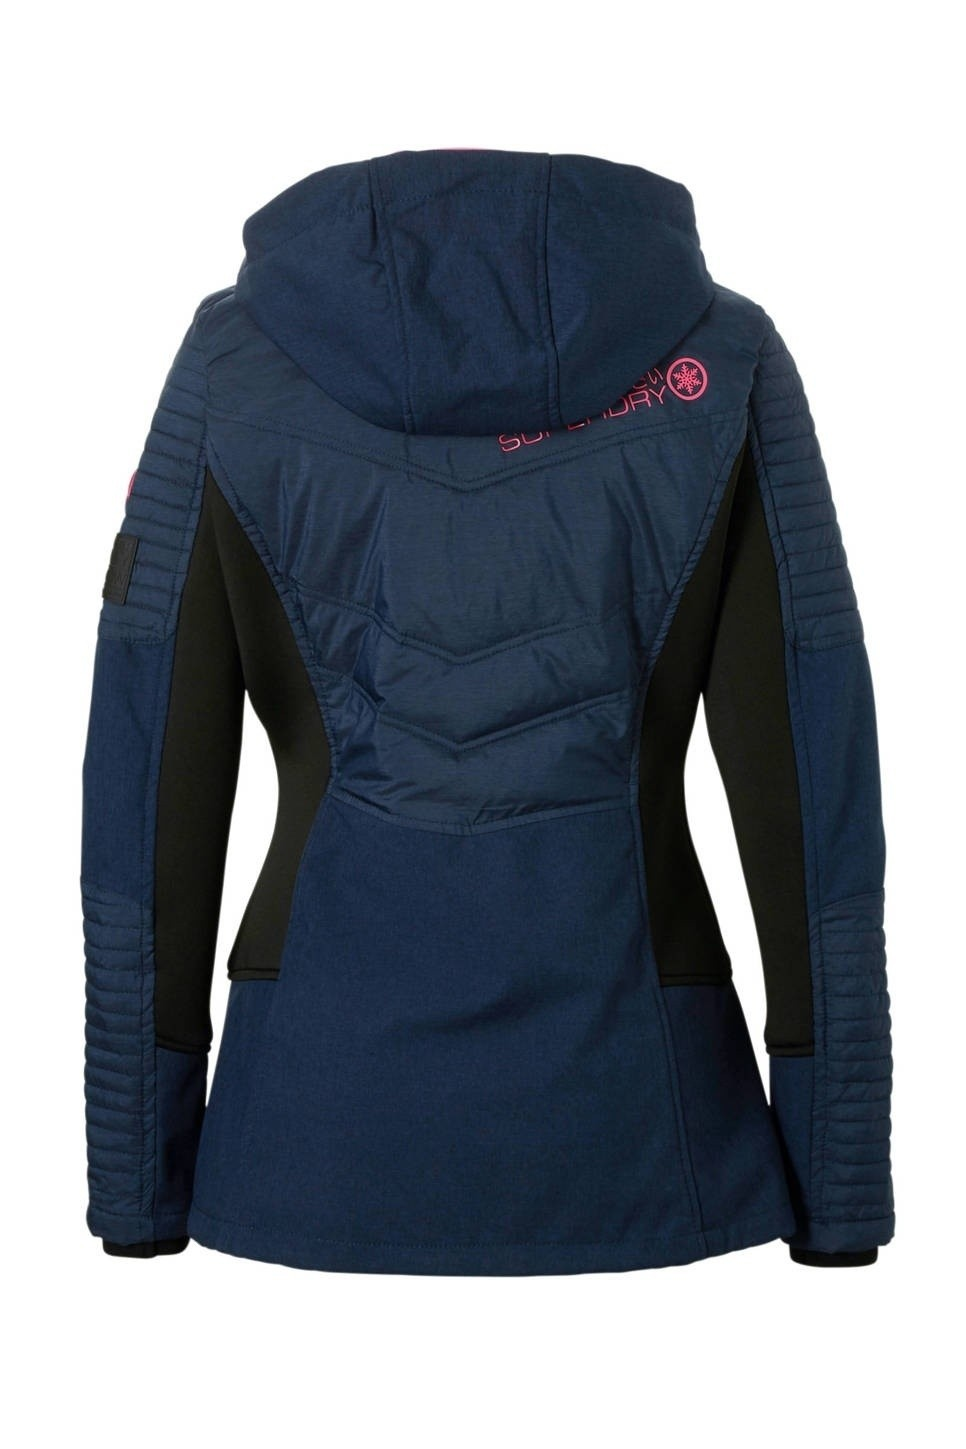 Superdry Softshell Dames Softshell Superdry Dames Softshell Superdry Dames Superdry Dames Dames Superdry Softshell JcTlF1K